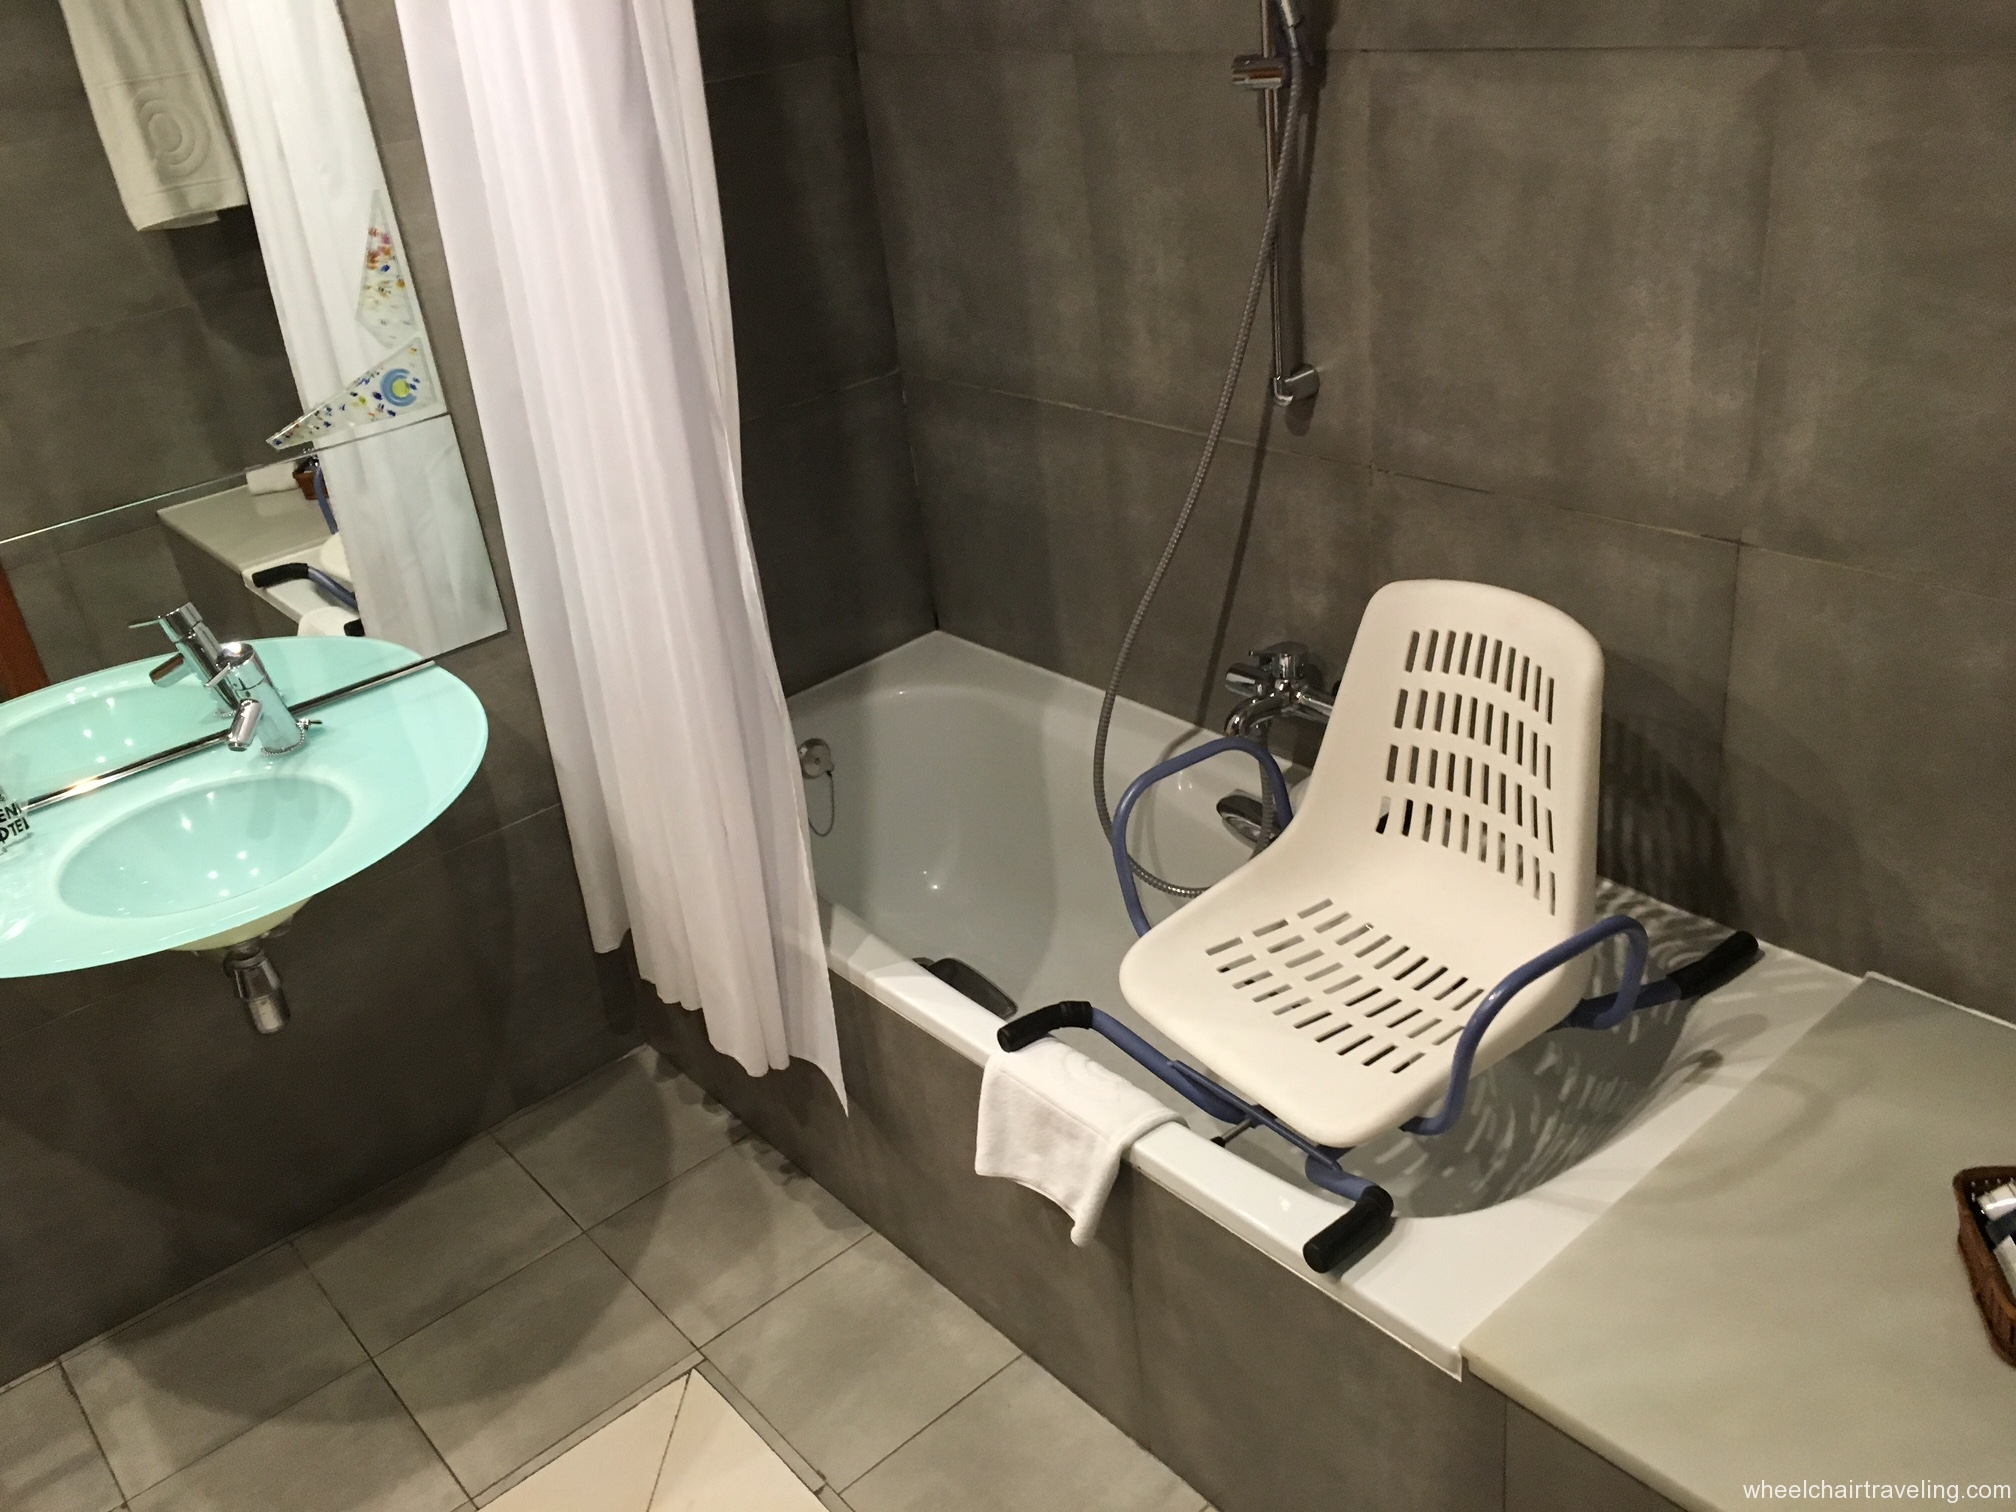 Barcelona hotel bathroom bathtub